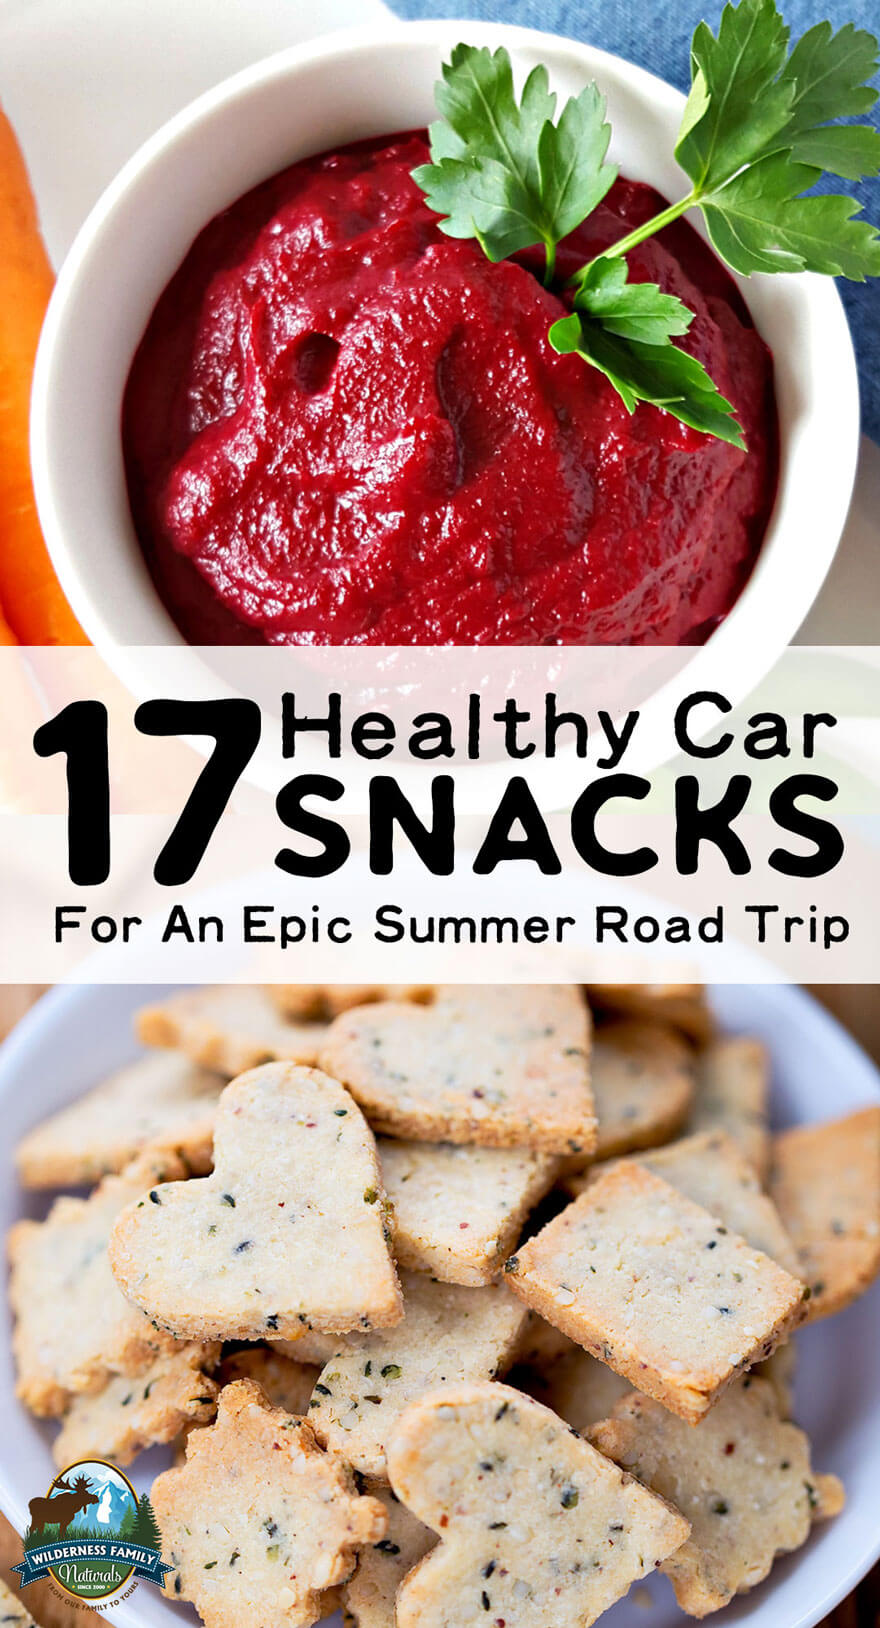 17 Healthy Car Snacks For An Epic Summer Road Trip | We've chosen the best of our nourishing snack recipes so you can load up and enjoy an epic road trip! From protein-packed granolas and sweet treats to salty snacks or veggies and dip, it's all here... and it's all portable! | WildernessFamilyNaturals.com